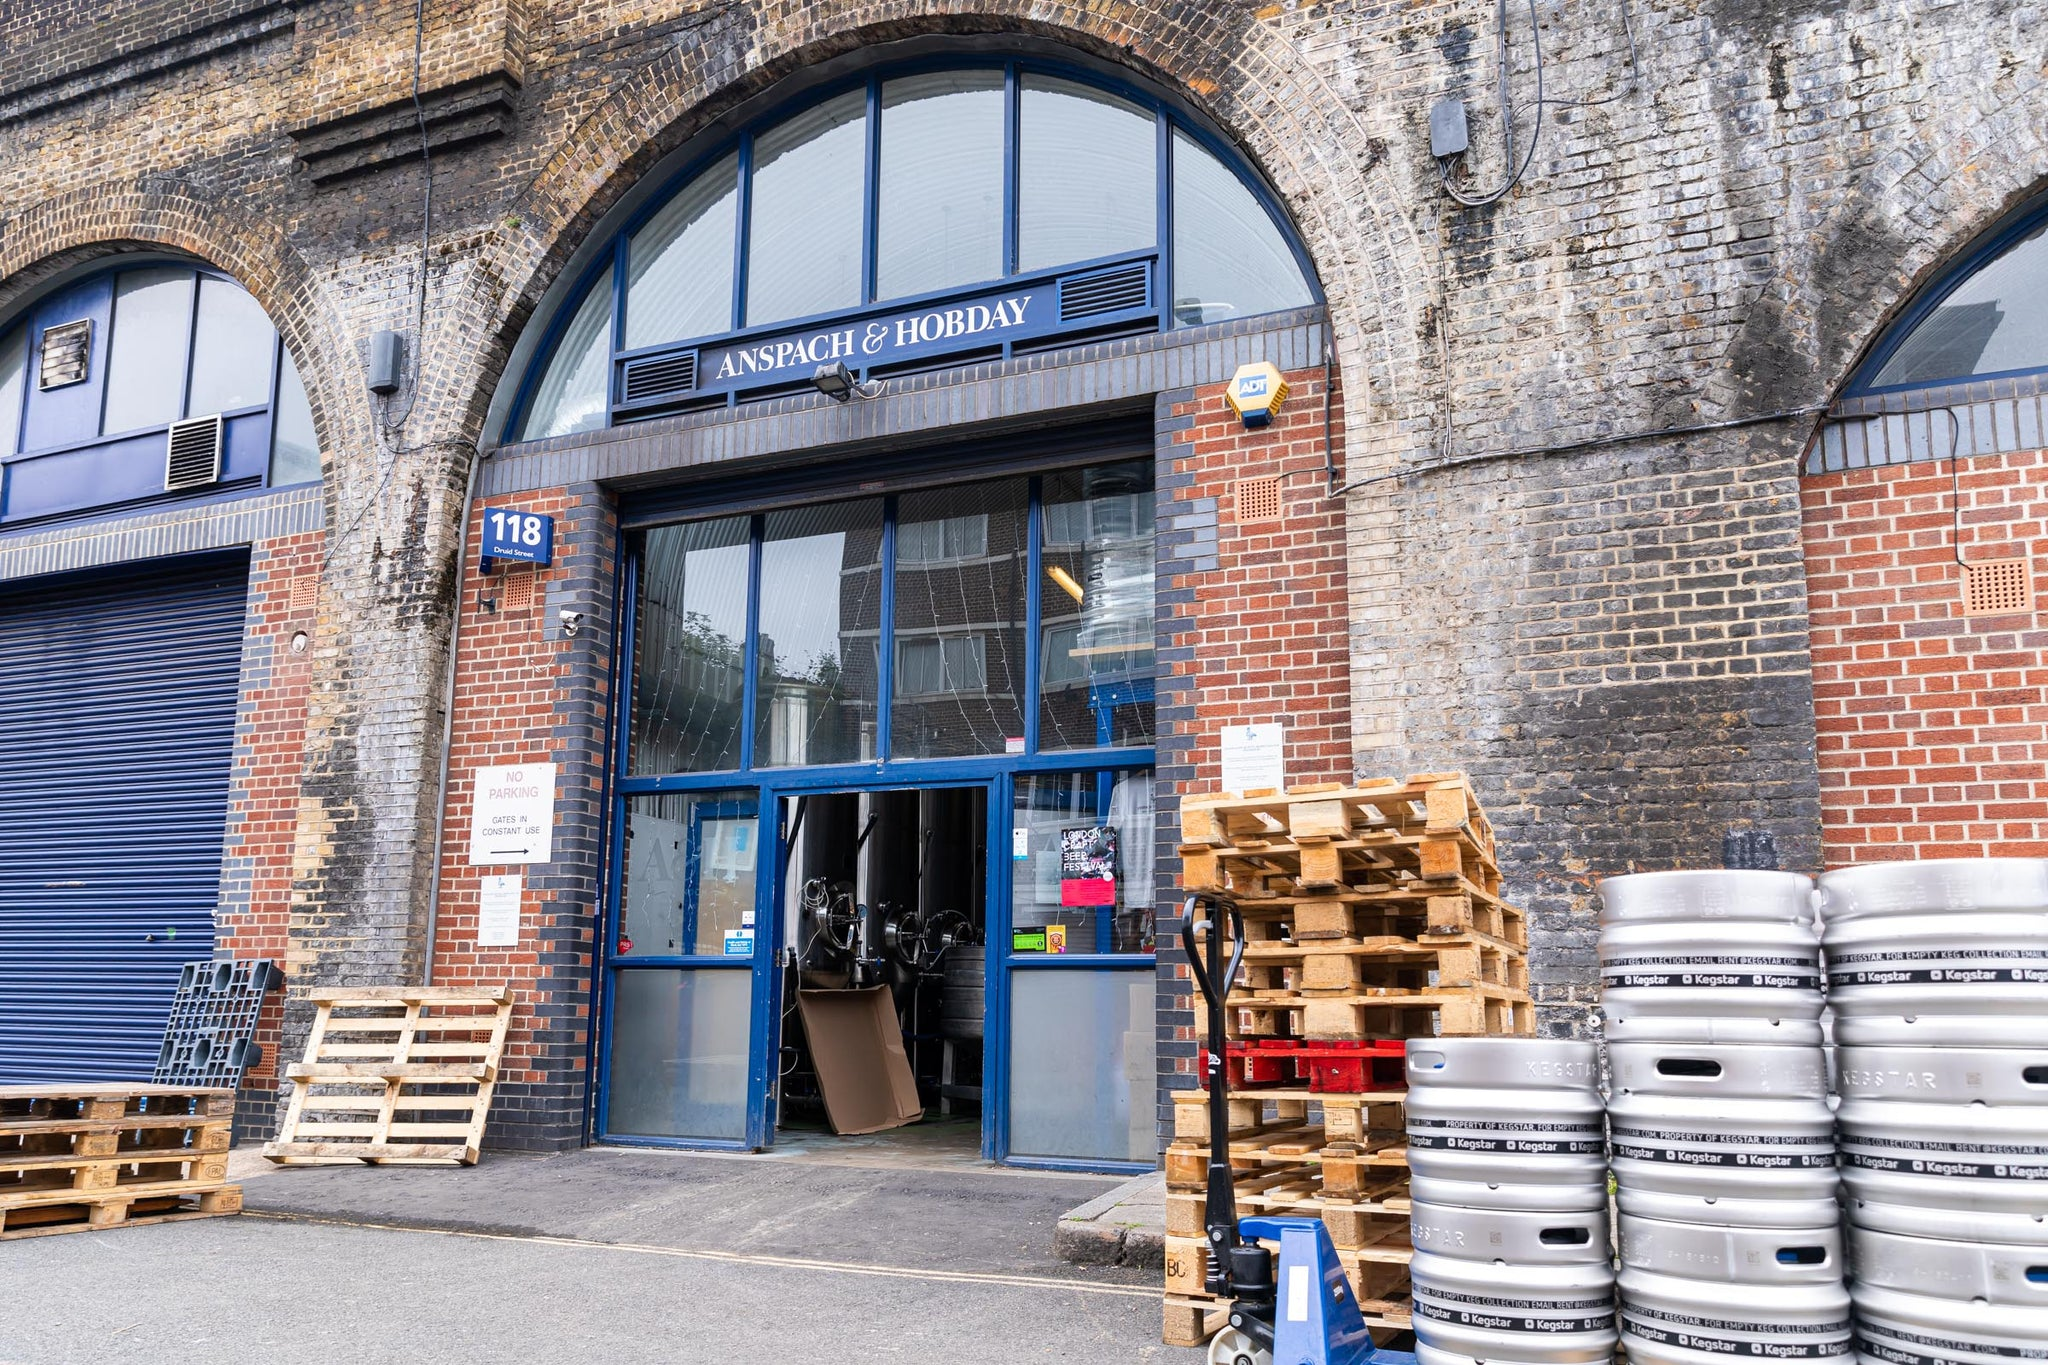 Enjoy a cream ale at the Anspach & Hobday tap room in Bermondsey